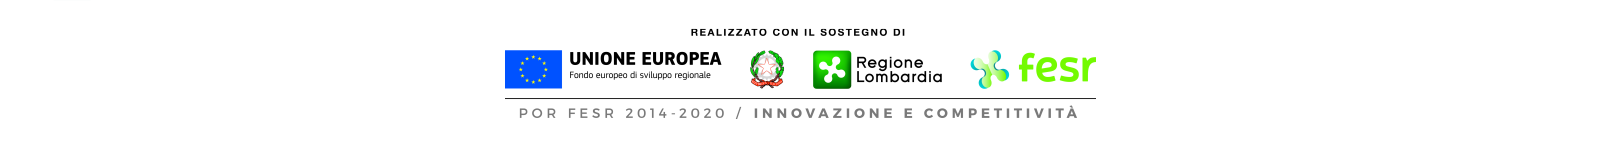 Realized with the support of European Union, Lombardy region, city of Milan and FESR